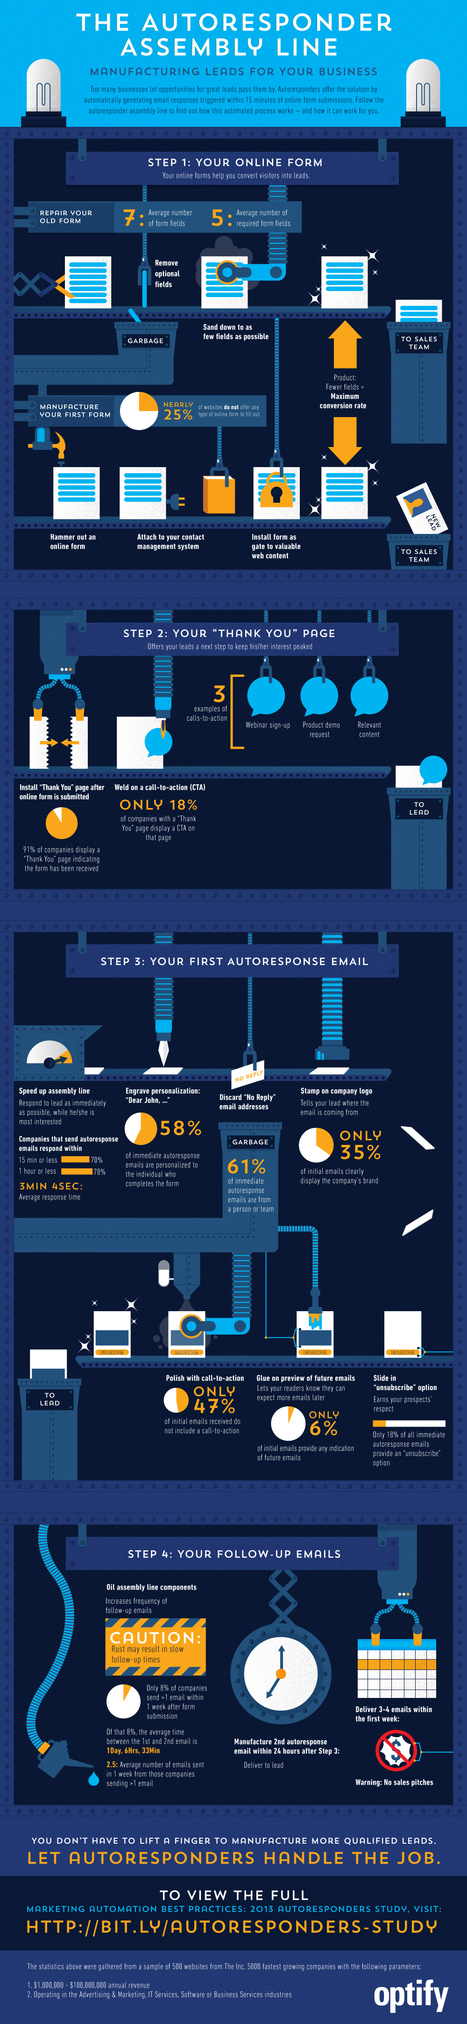 Optify | [Infographic] The Autoresponder Assembly Line | Marketing Automation | Scoop.it